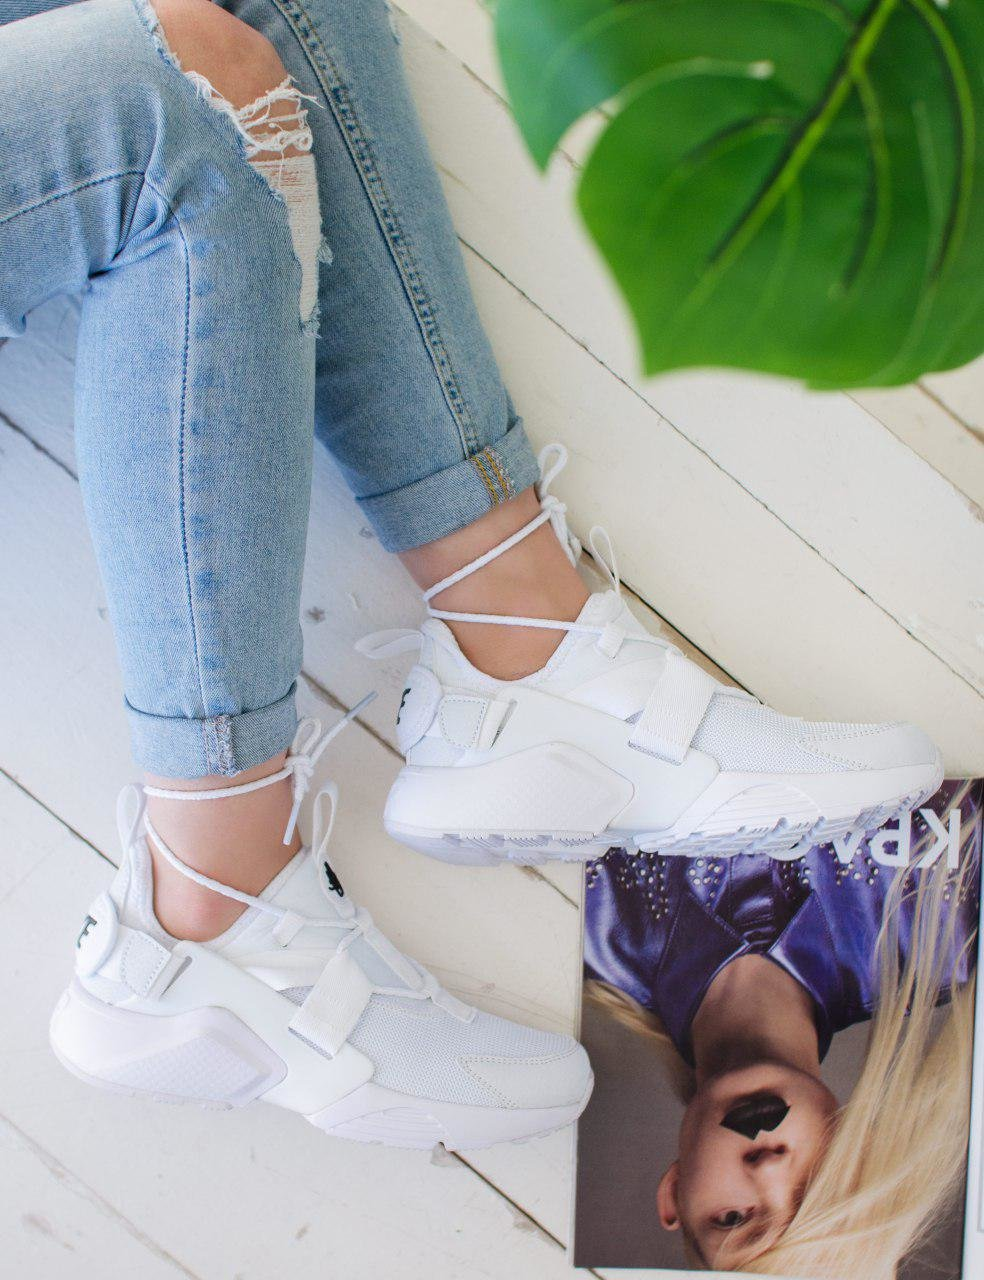 Кроссовки NK Huarache City Low White ( Реплика ААА+ ), 36